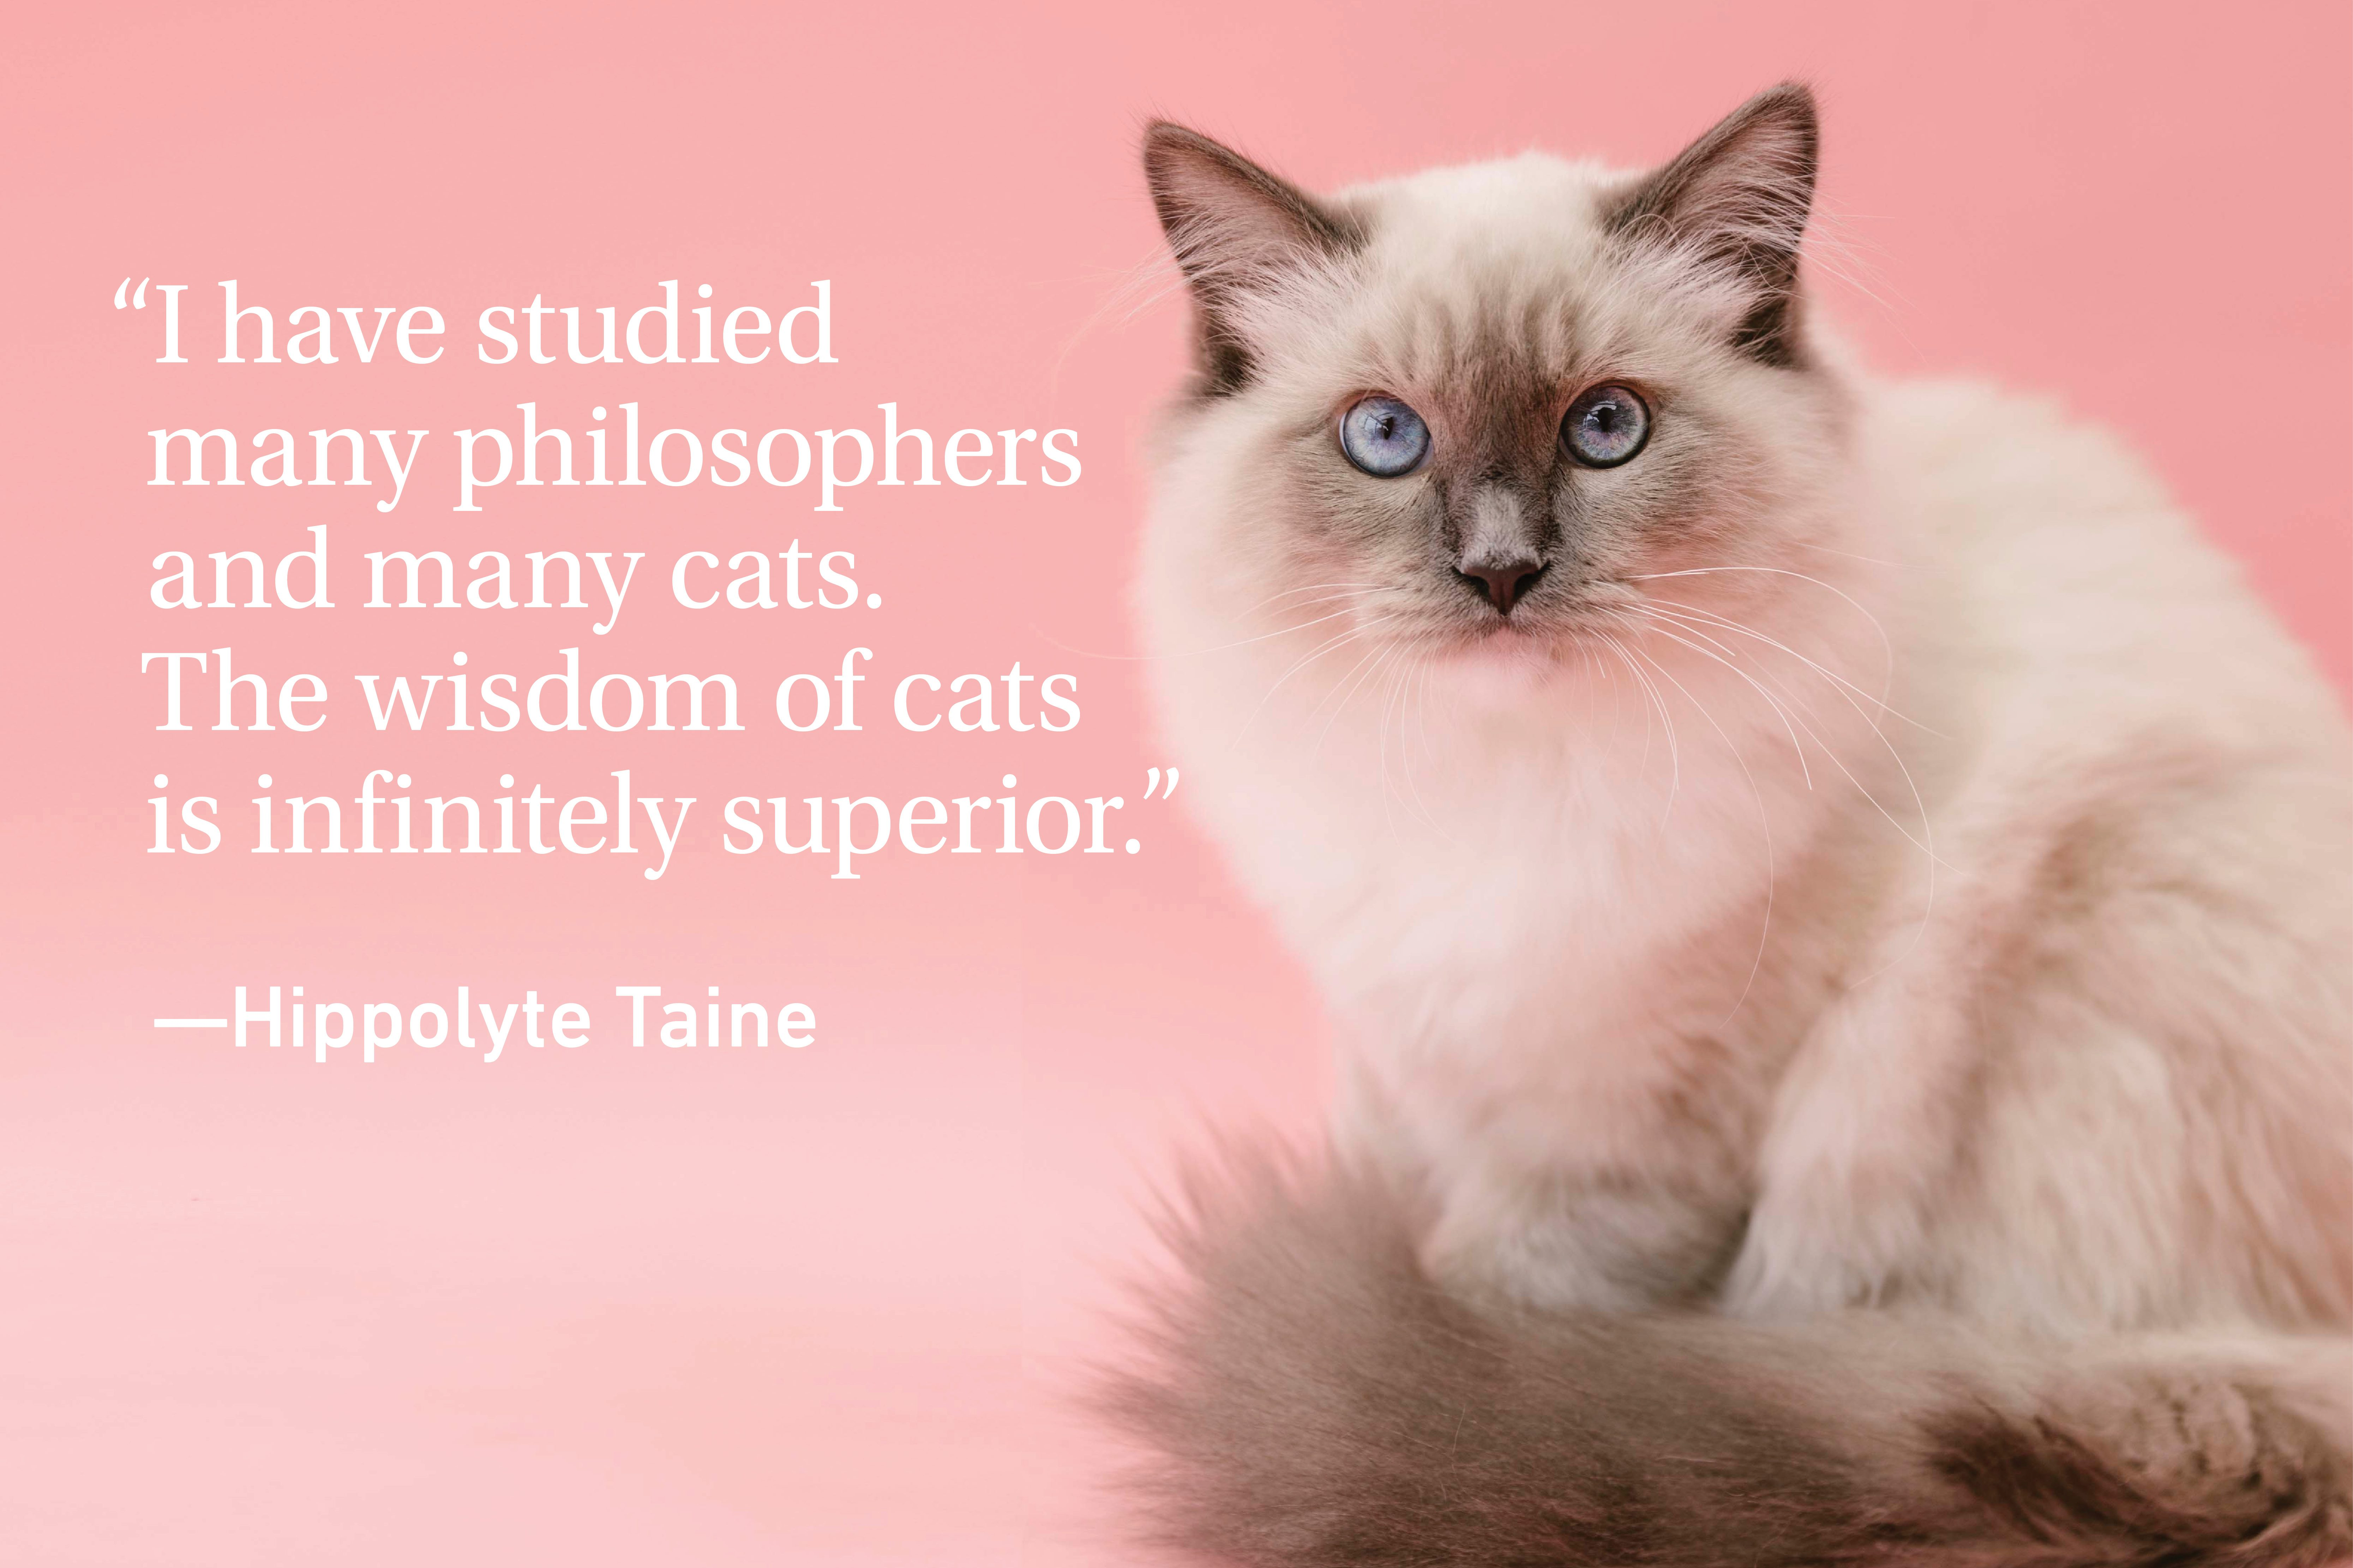 Cat quote on pink background with a cat